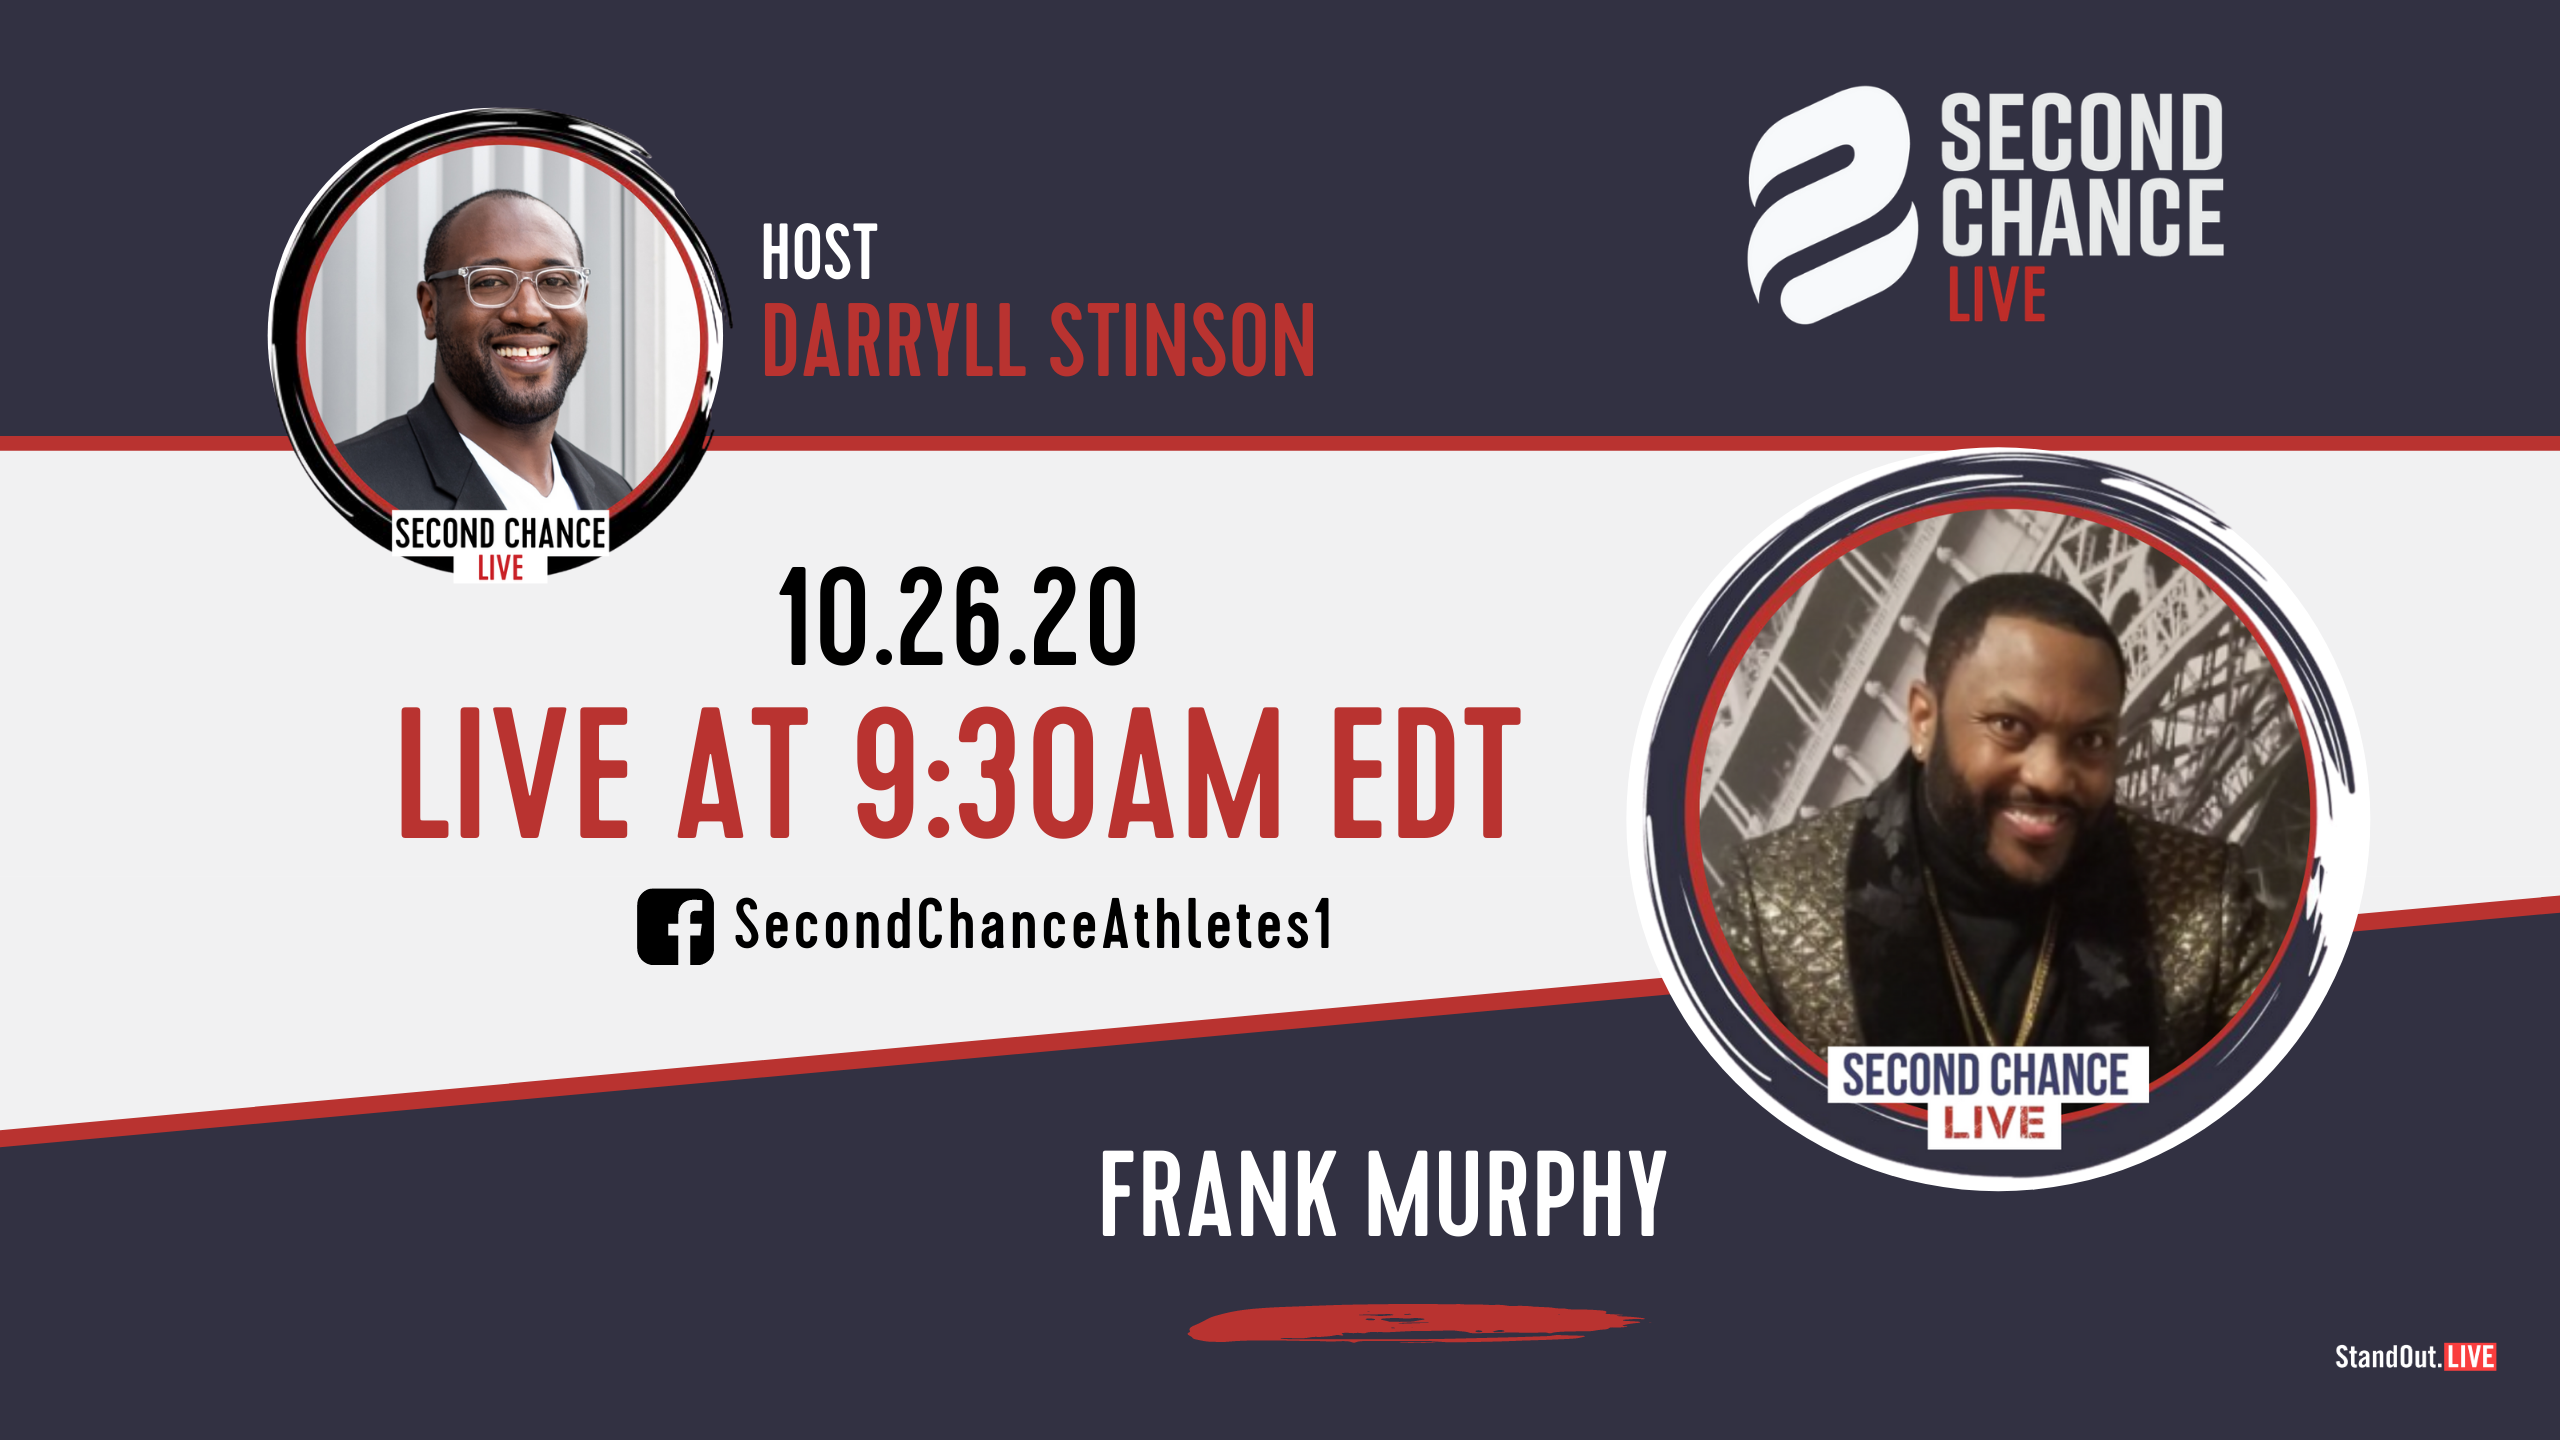 Second Chance LIVE -with Frank Murphy